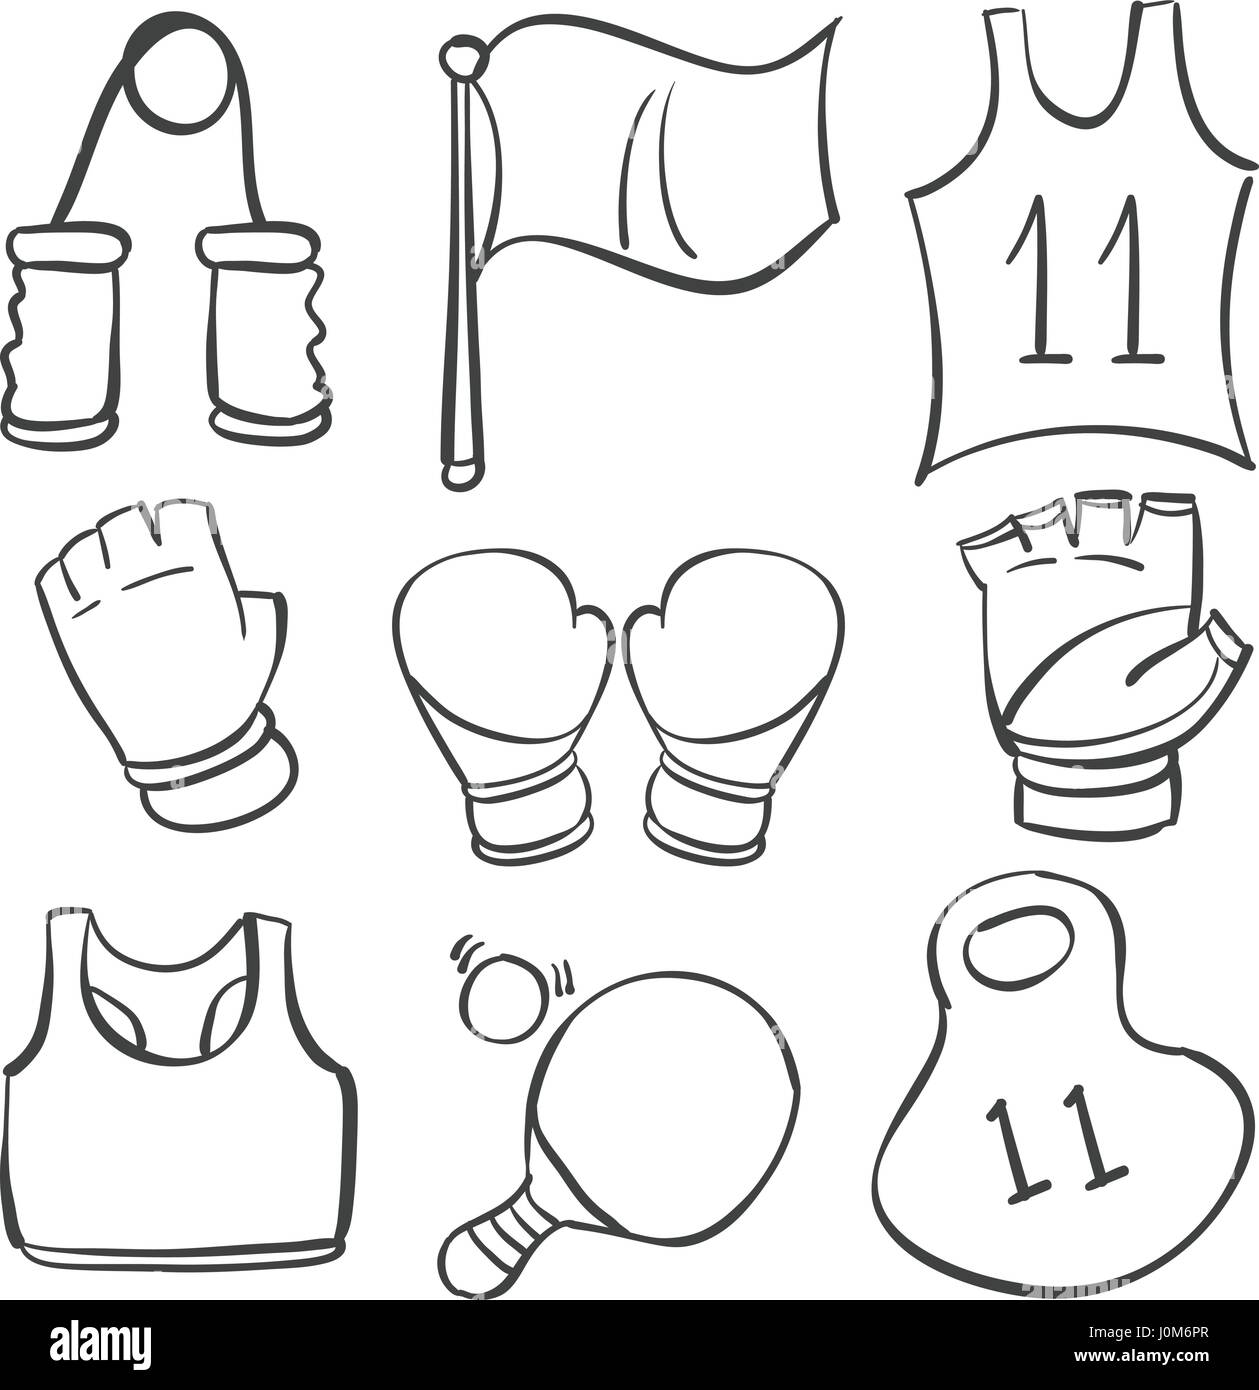 Collection stock sport equipment doodles - Stock Image